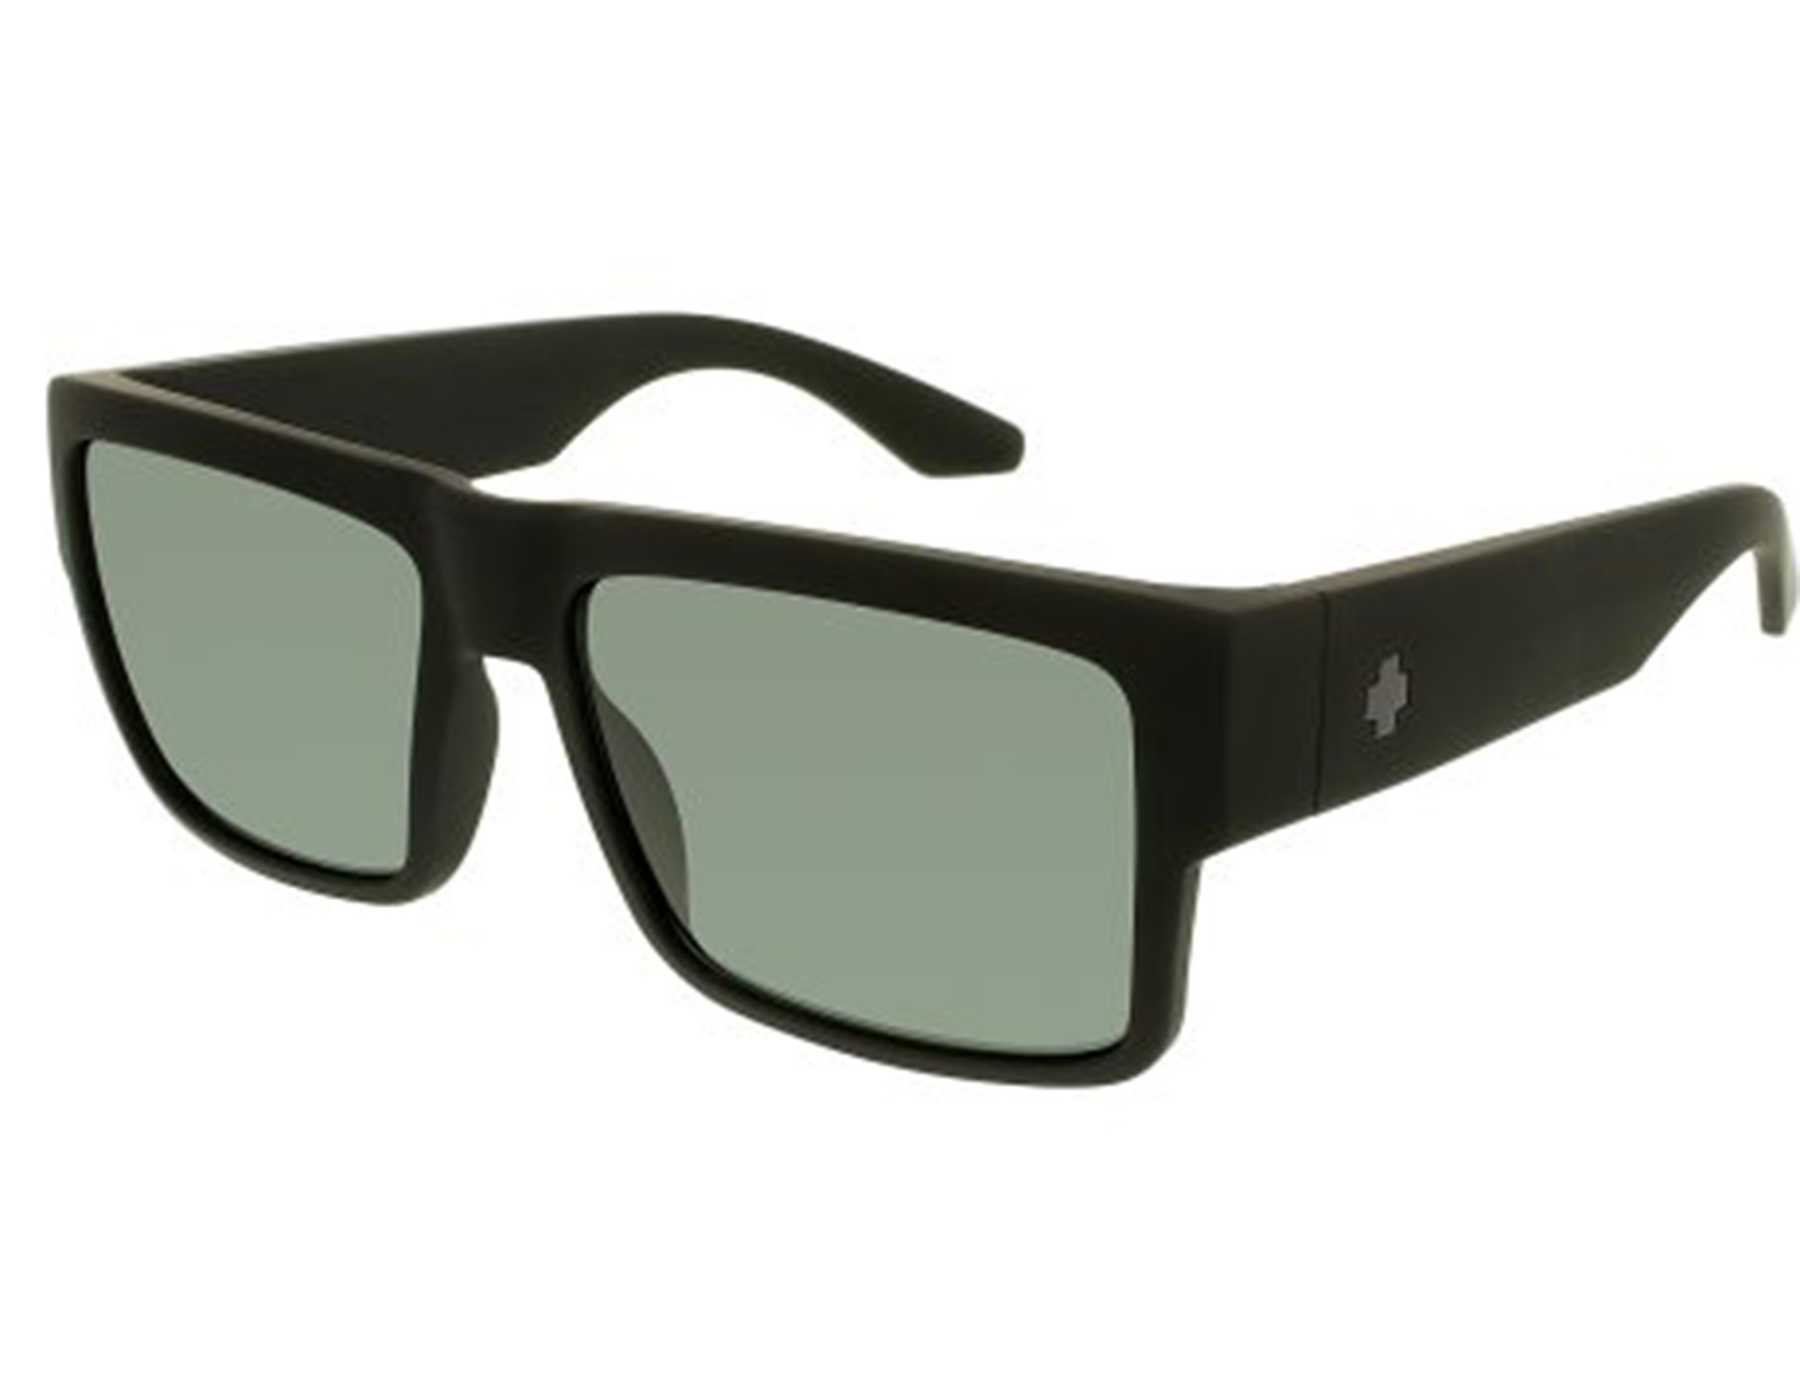 2d5ecc57df Details about New Spy CYRUS-673180973864 Matte Black   Happy Gray Green  Polarized Sunglasses